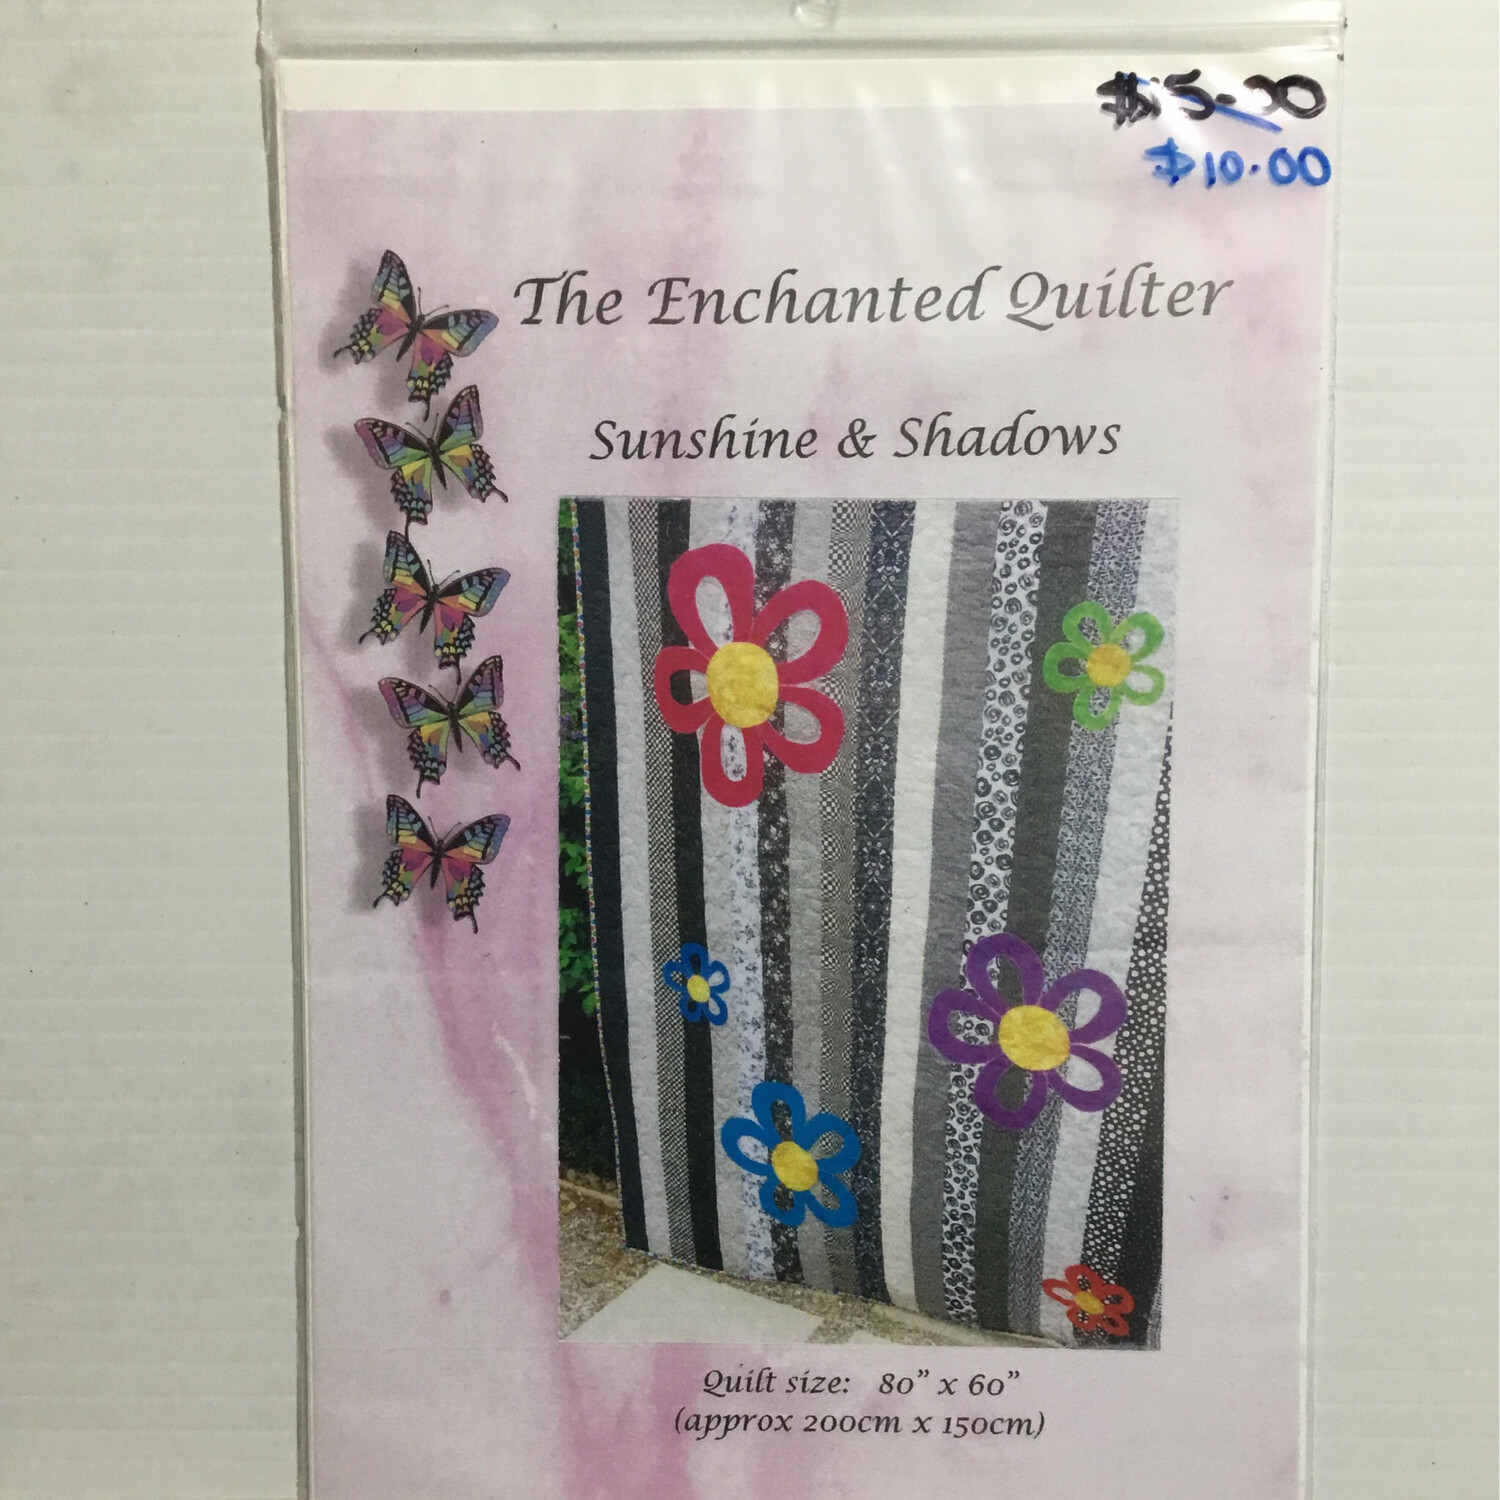 The Enchanted Quilter - Sunshine & Shadows